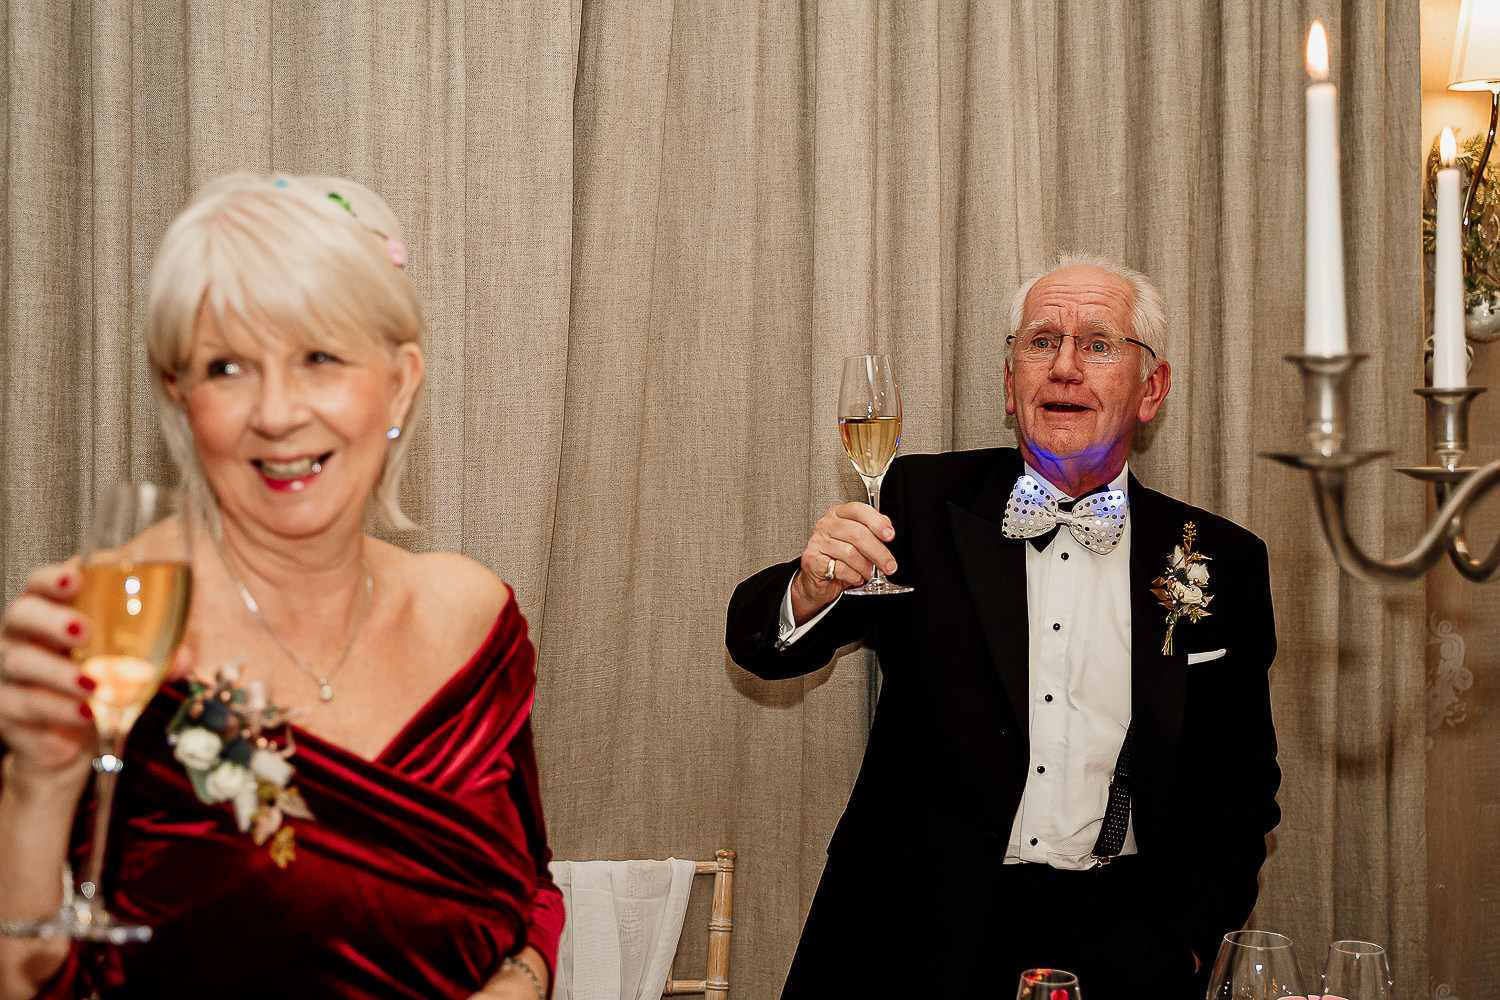 Parents of the bride toasting